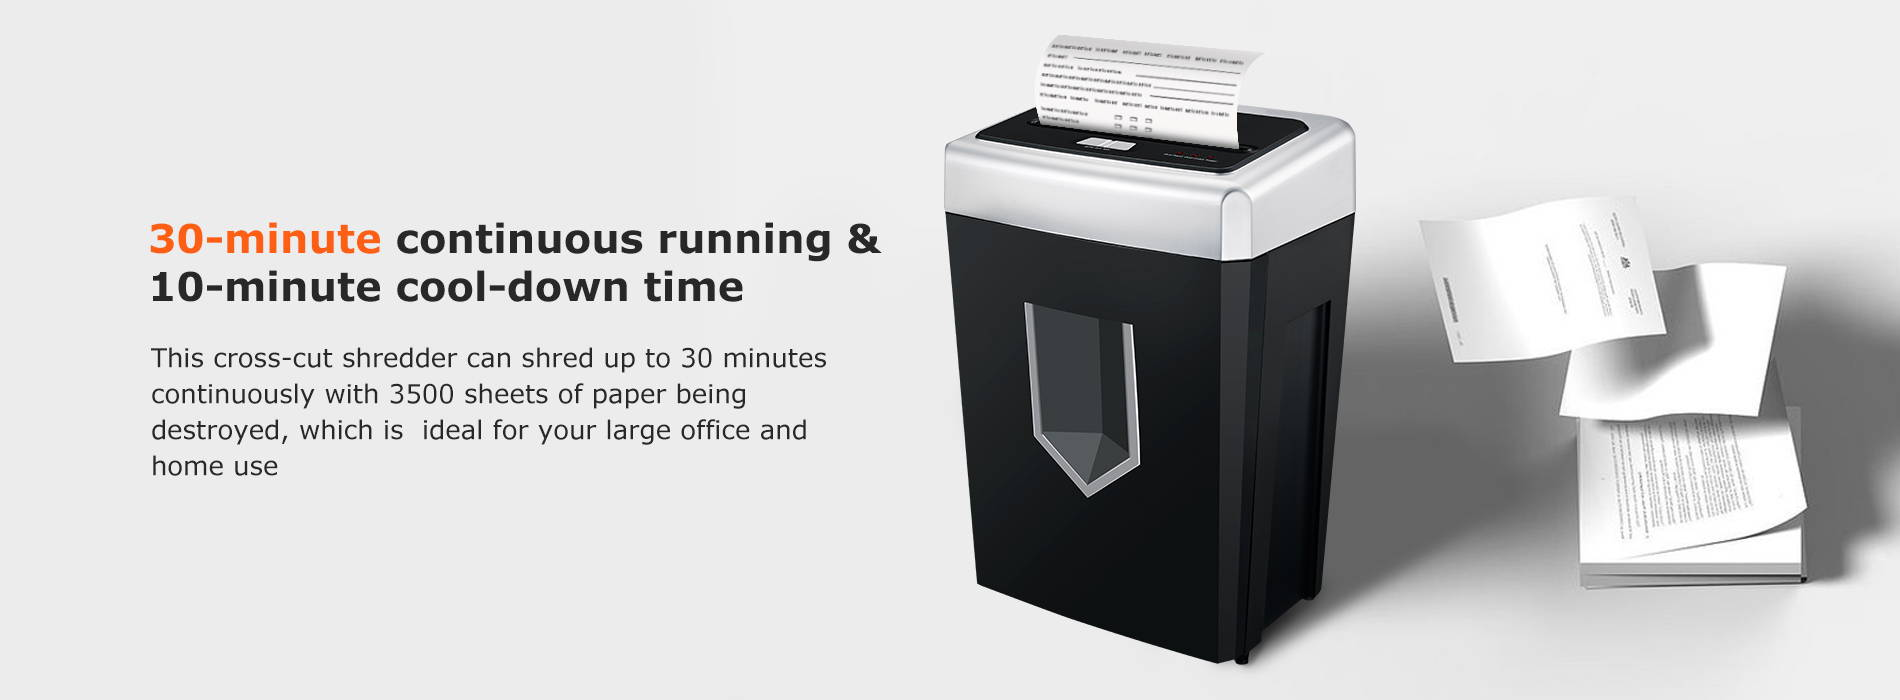 30-minute continuous running & 10-minute cool-down time  This cross-cut shredder can shred up to 30 minutes continuously with 3500 sheets of paper being destroyed, which is  ideal for your large office and home use.